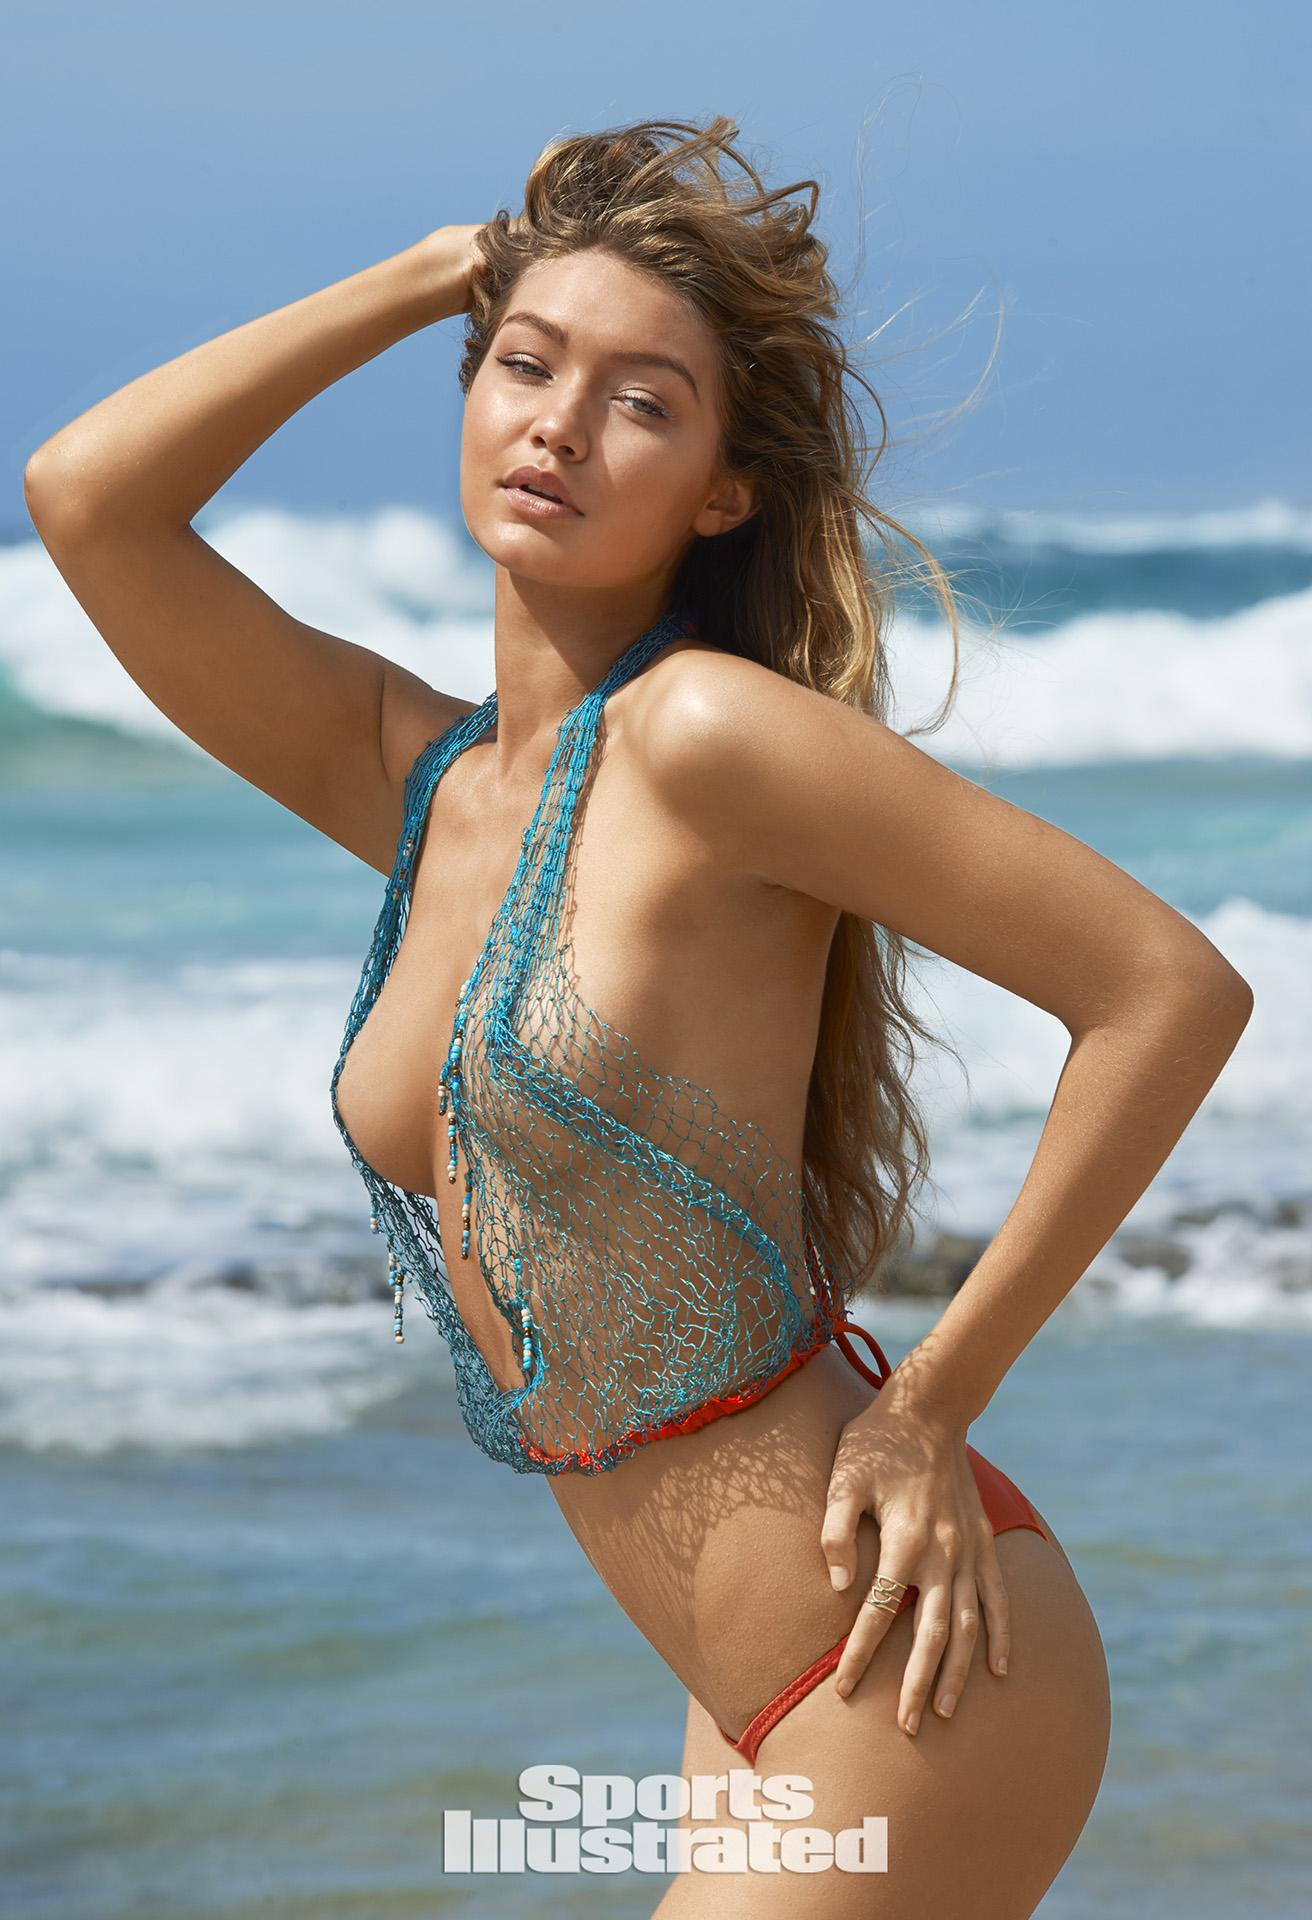 Gigi hadid sports illustrated nude